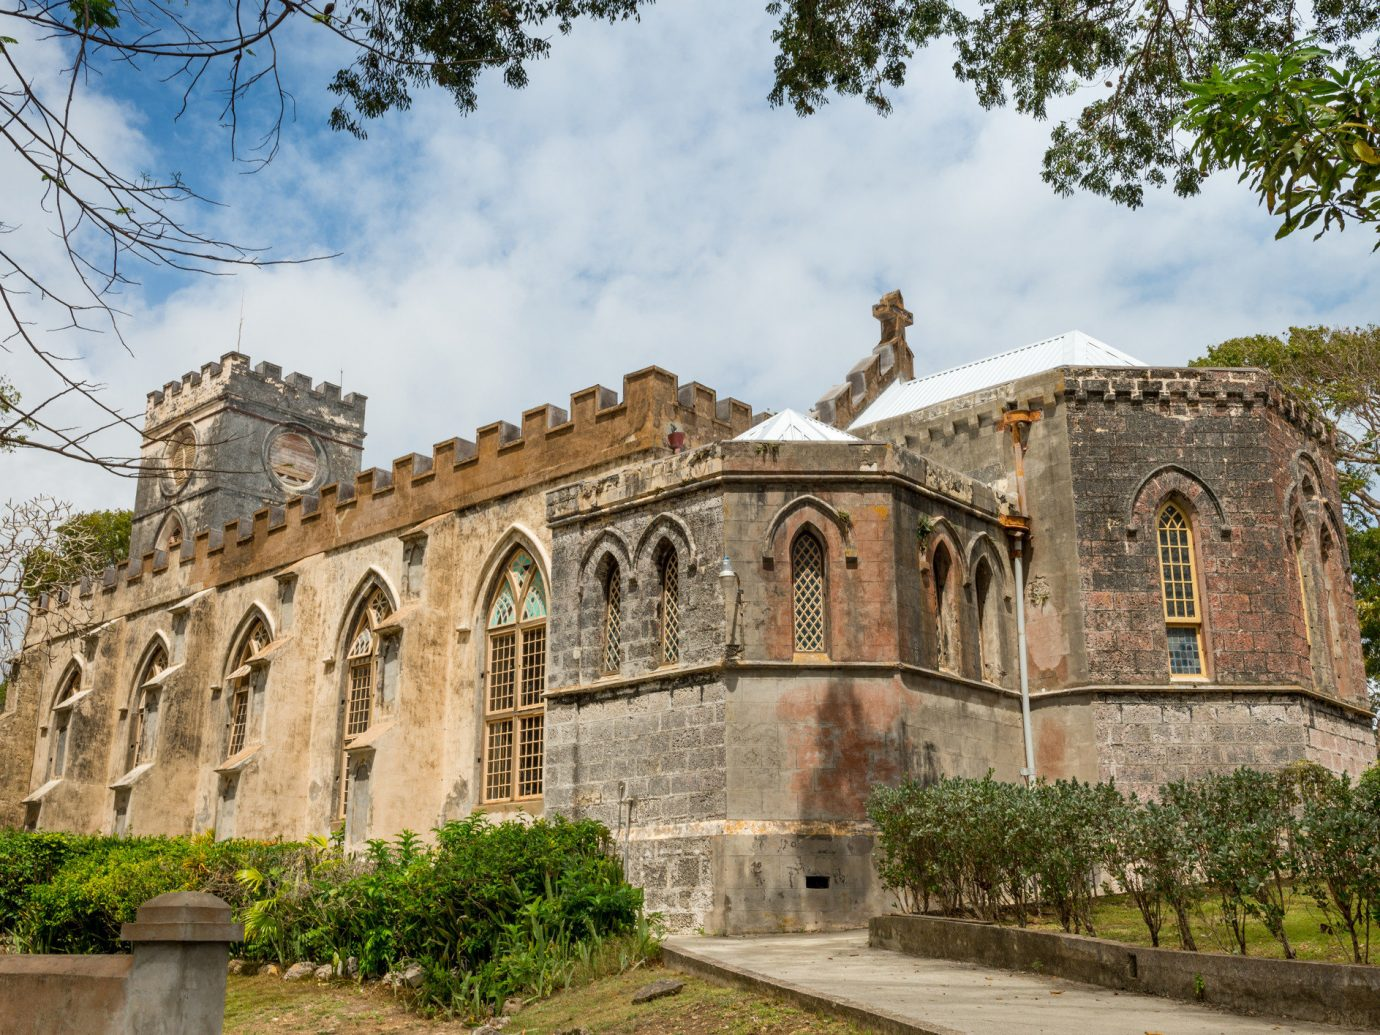 Trip Ideas tree outdoor sky building landmark Architecture estate stone tourism ancient history monastery palace old place of worship château Church history synagogue